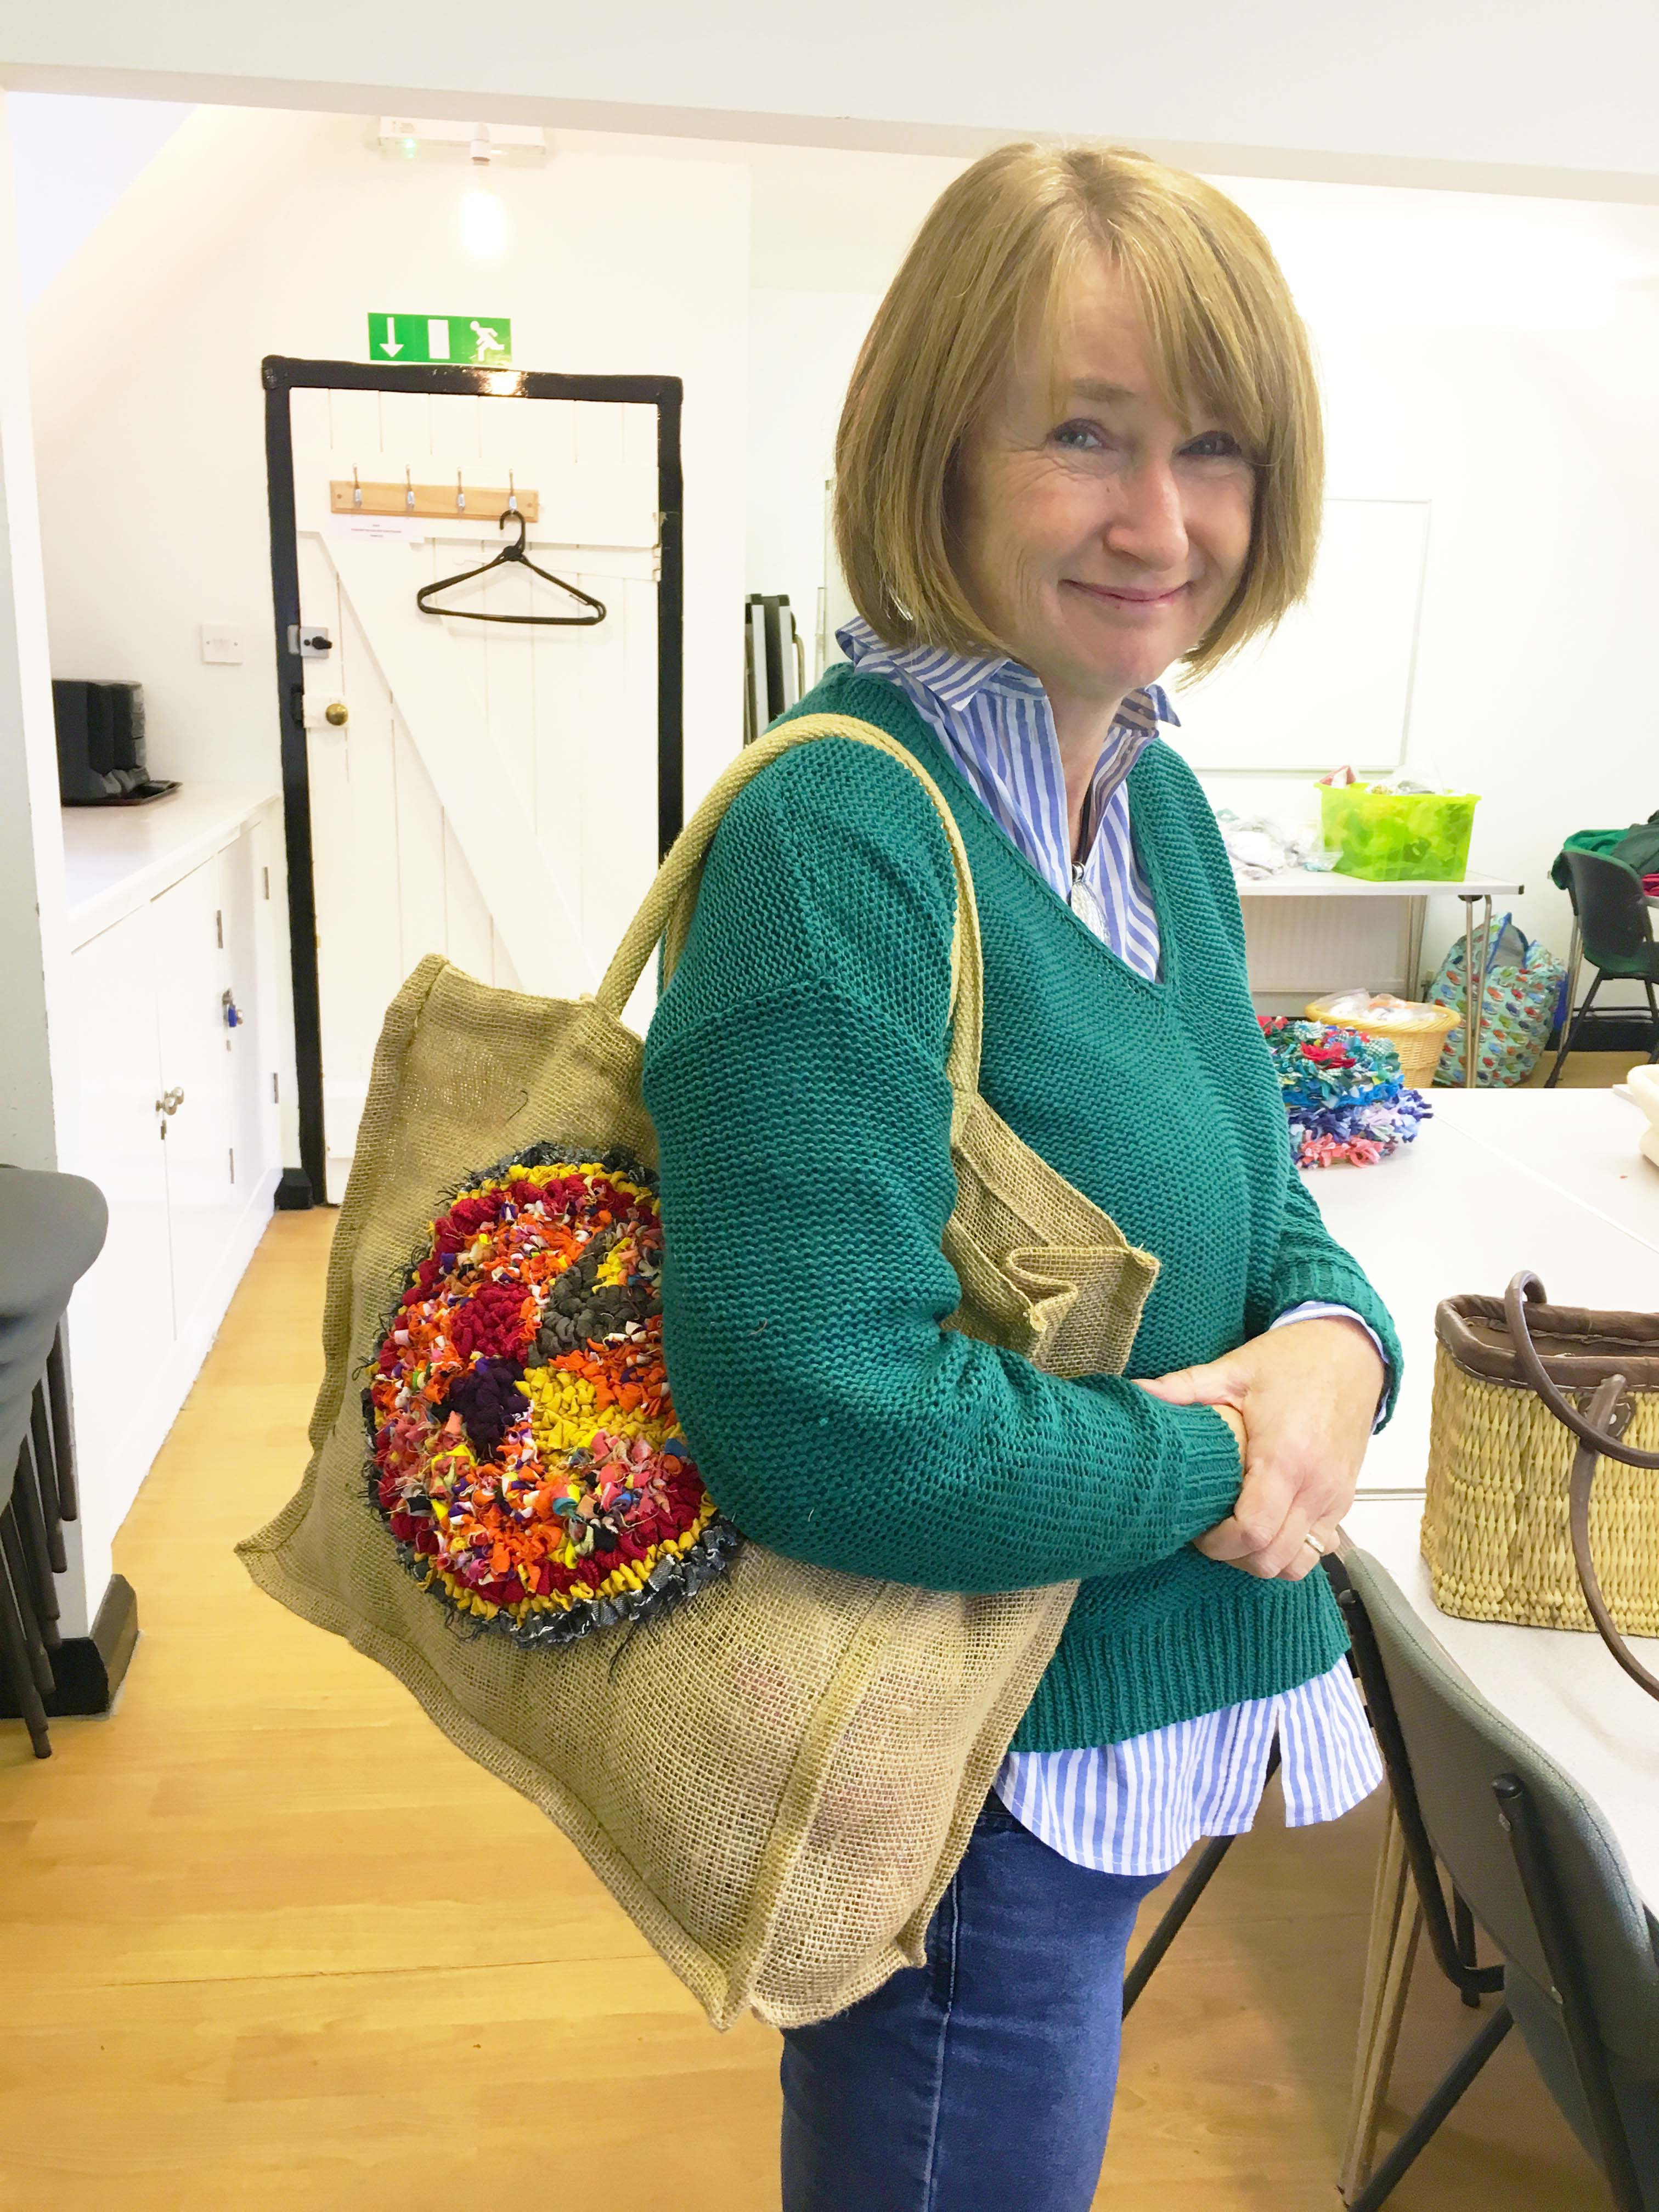 Rag Rug Hessian Ping Bag Ragged Life Work